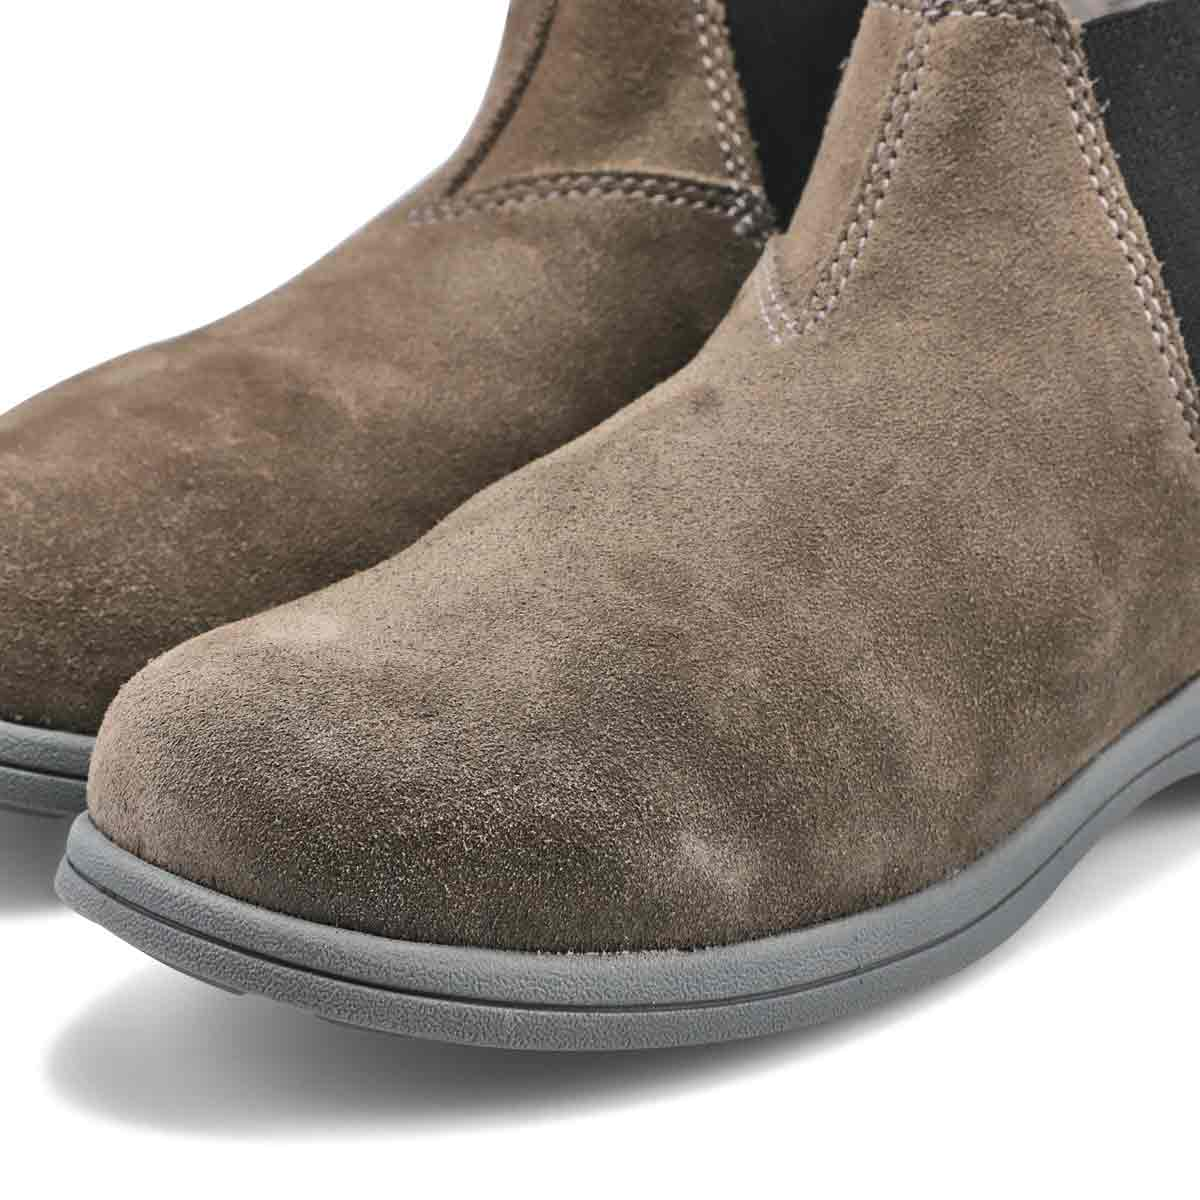 Unisex Active Range olive twin gore boot